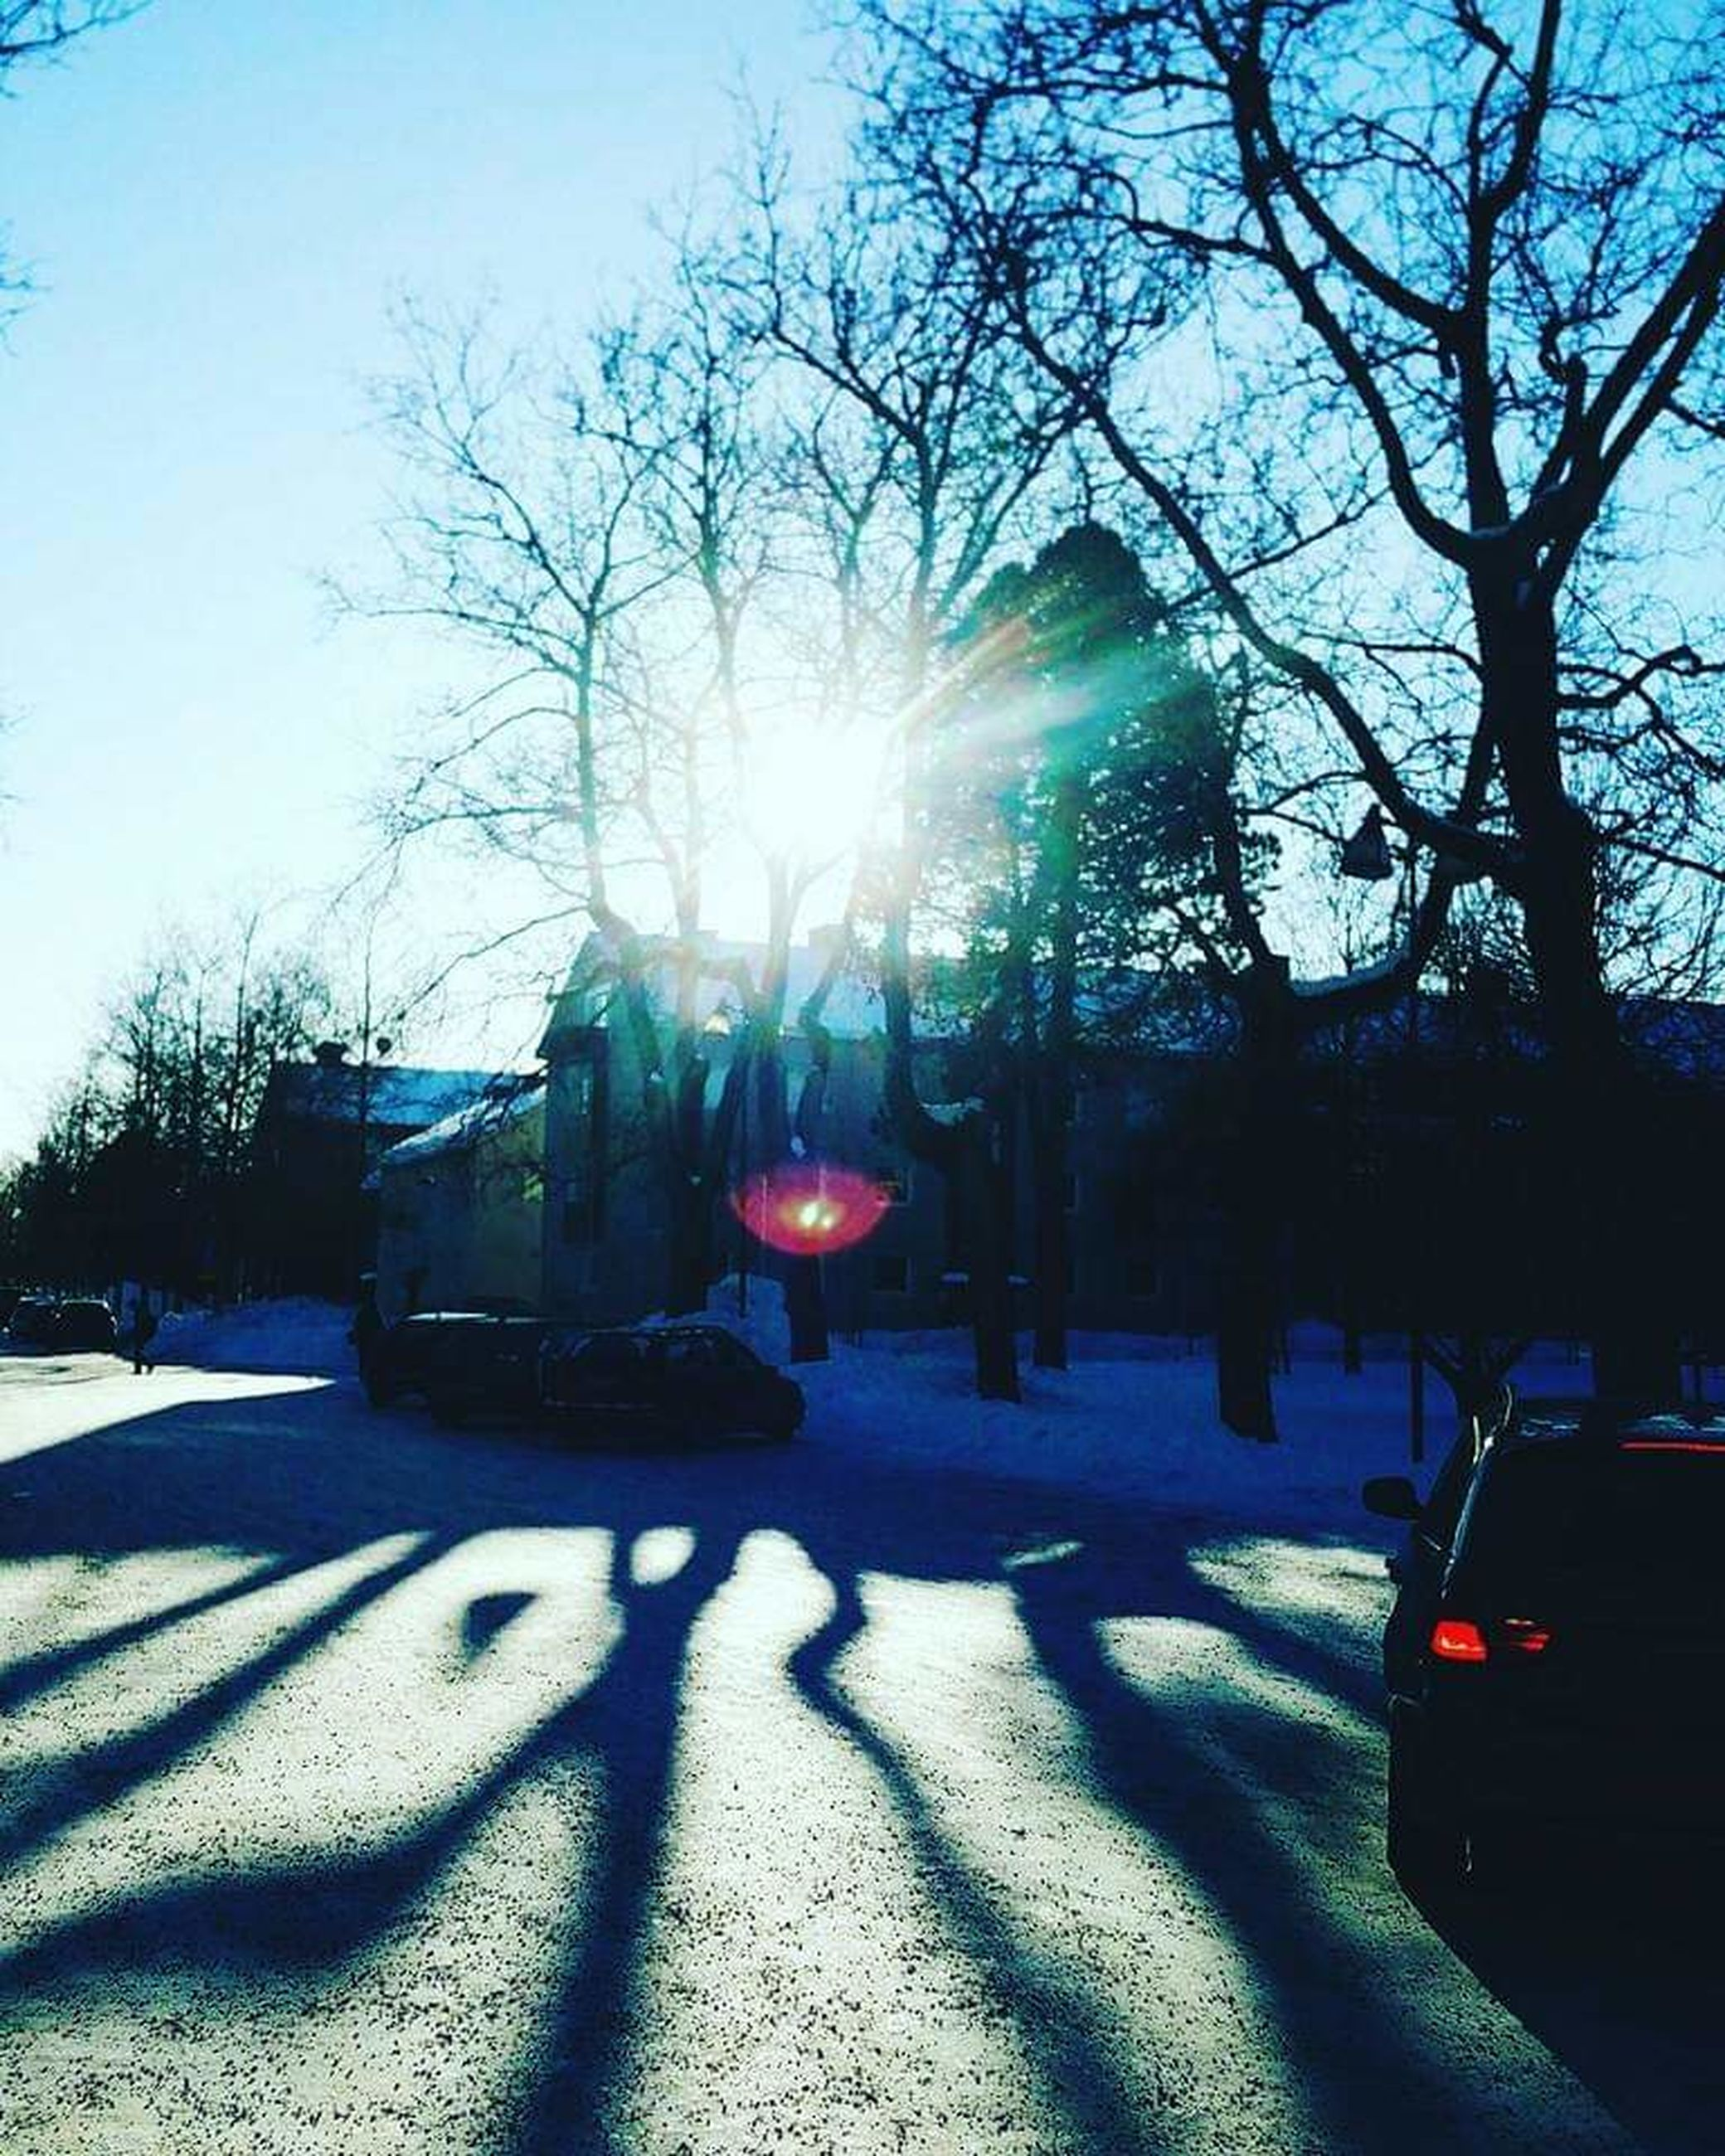 tree, sunlight, nature, plant, transportation, car, shadow, motor vehicle, mode of transportation, city, street, sky, road, snow, land vehicle, lens flare, architecture, light, sunbeam, day, outdoors, bare tree, morning, vehicle, building exterior, no people, winter, illuminated, built structure, back lit, lighting, cold temperature, city life, street light, sunny